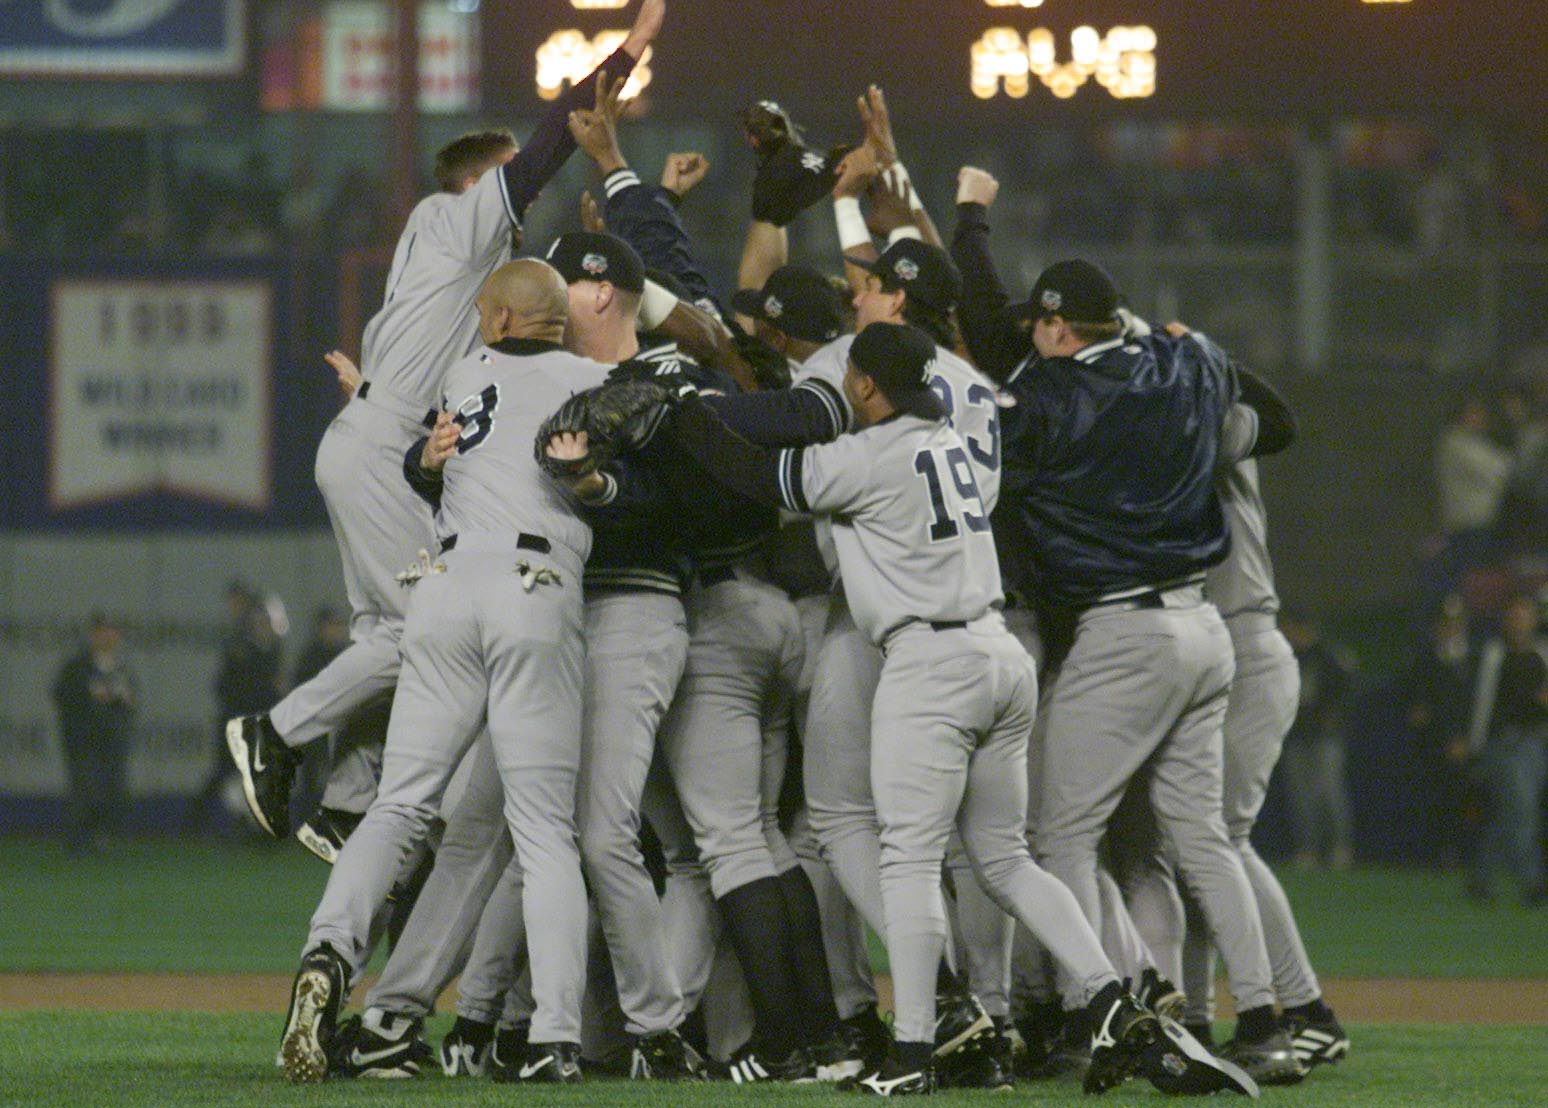 26 Oct 2000:  The New York Yankees celebrates their 4-2 win and World Series Championship over the New York Mets during Game 5 of the World Series at Shea Stadium in Flushing, New York. <DIGITAL IMAGE> Mandatory Credit: Jed Jacobsohn/ALLSPORT